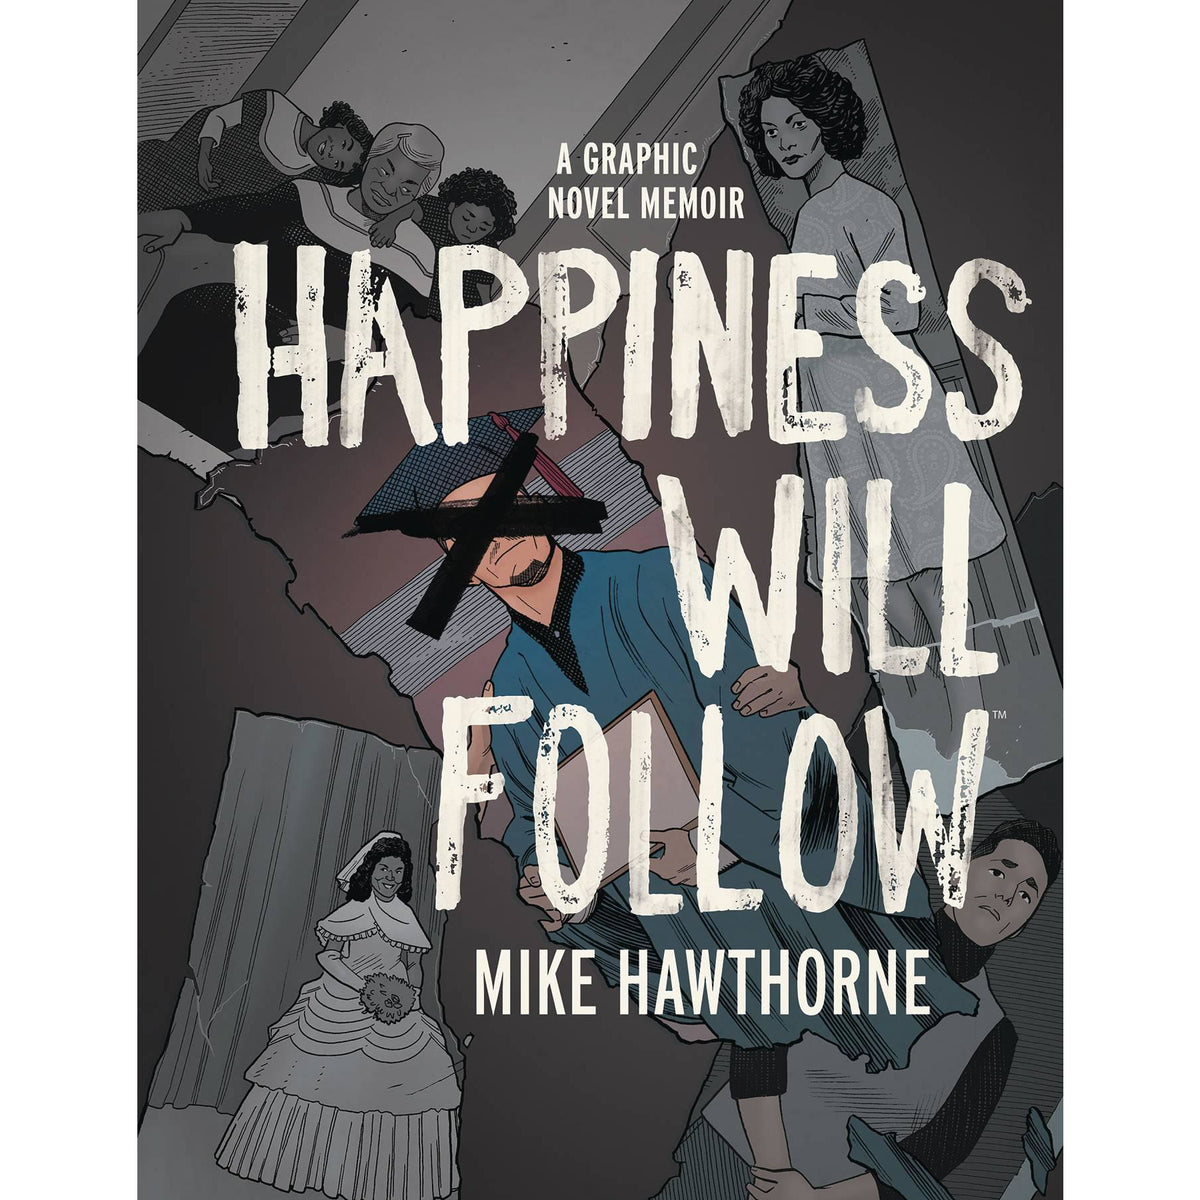 HAPPINESS WILL FOLLOW ORIGINAL GRAPHIC NOVEL